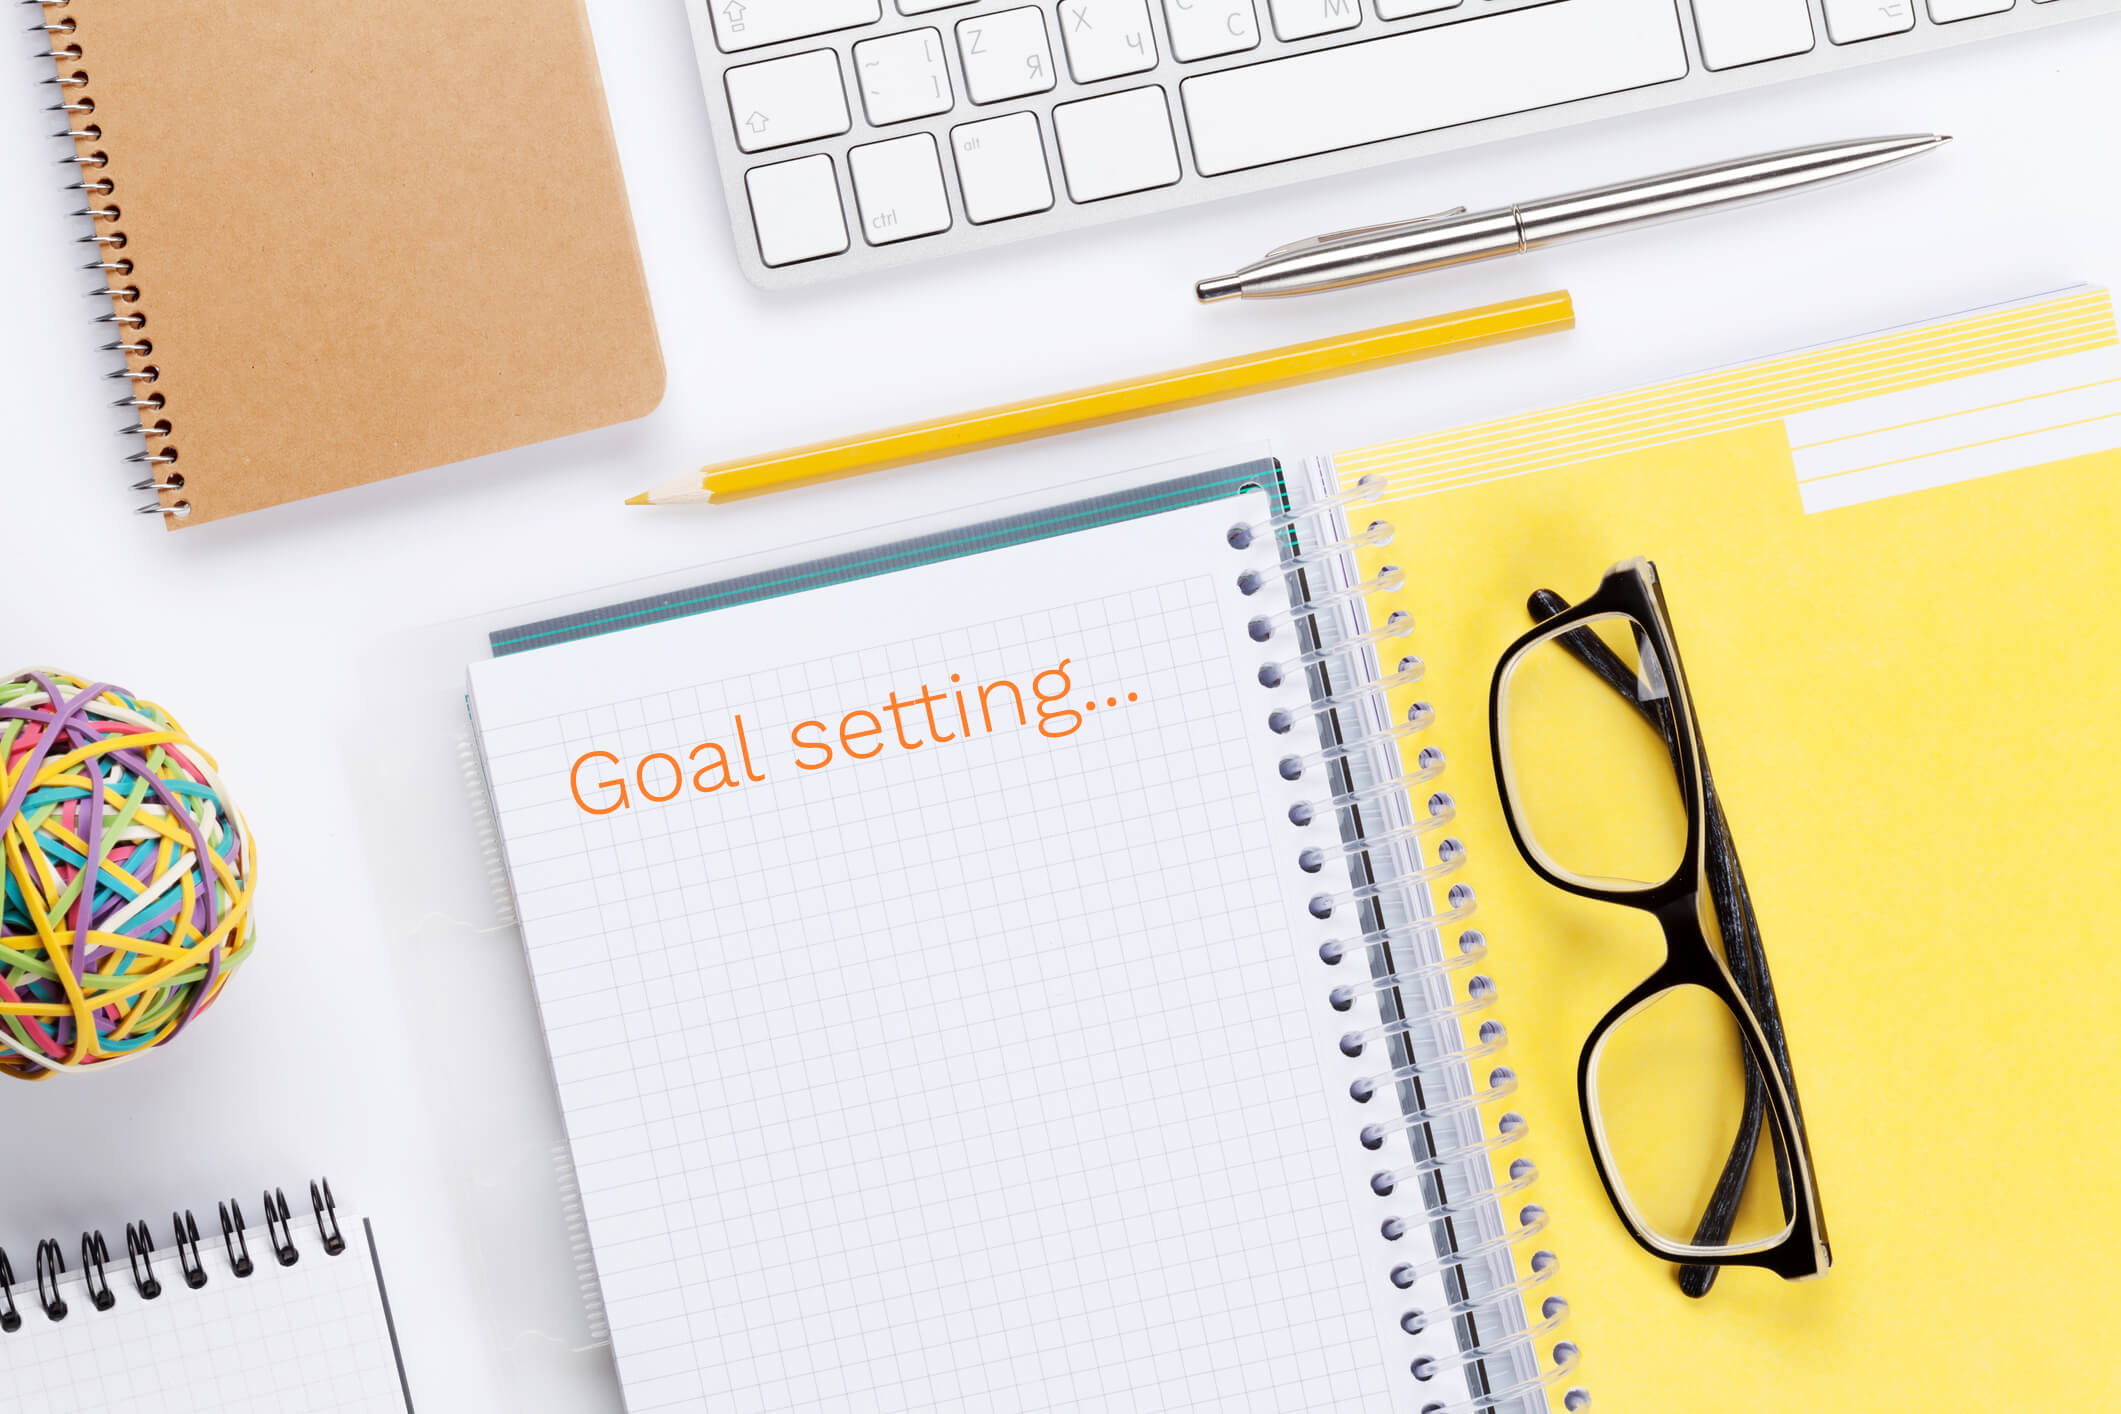 Goal setting for your start-up, and how to get it right